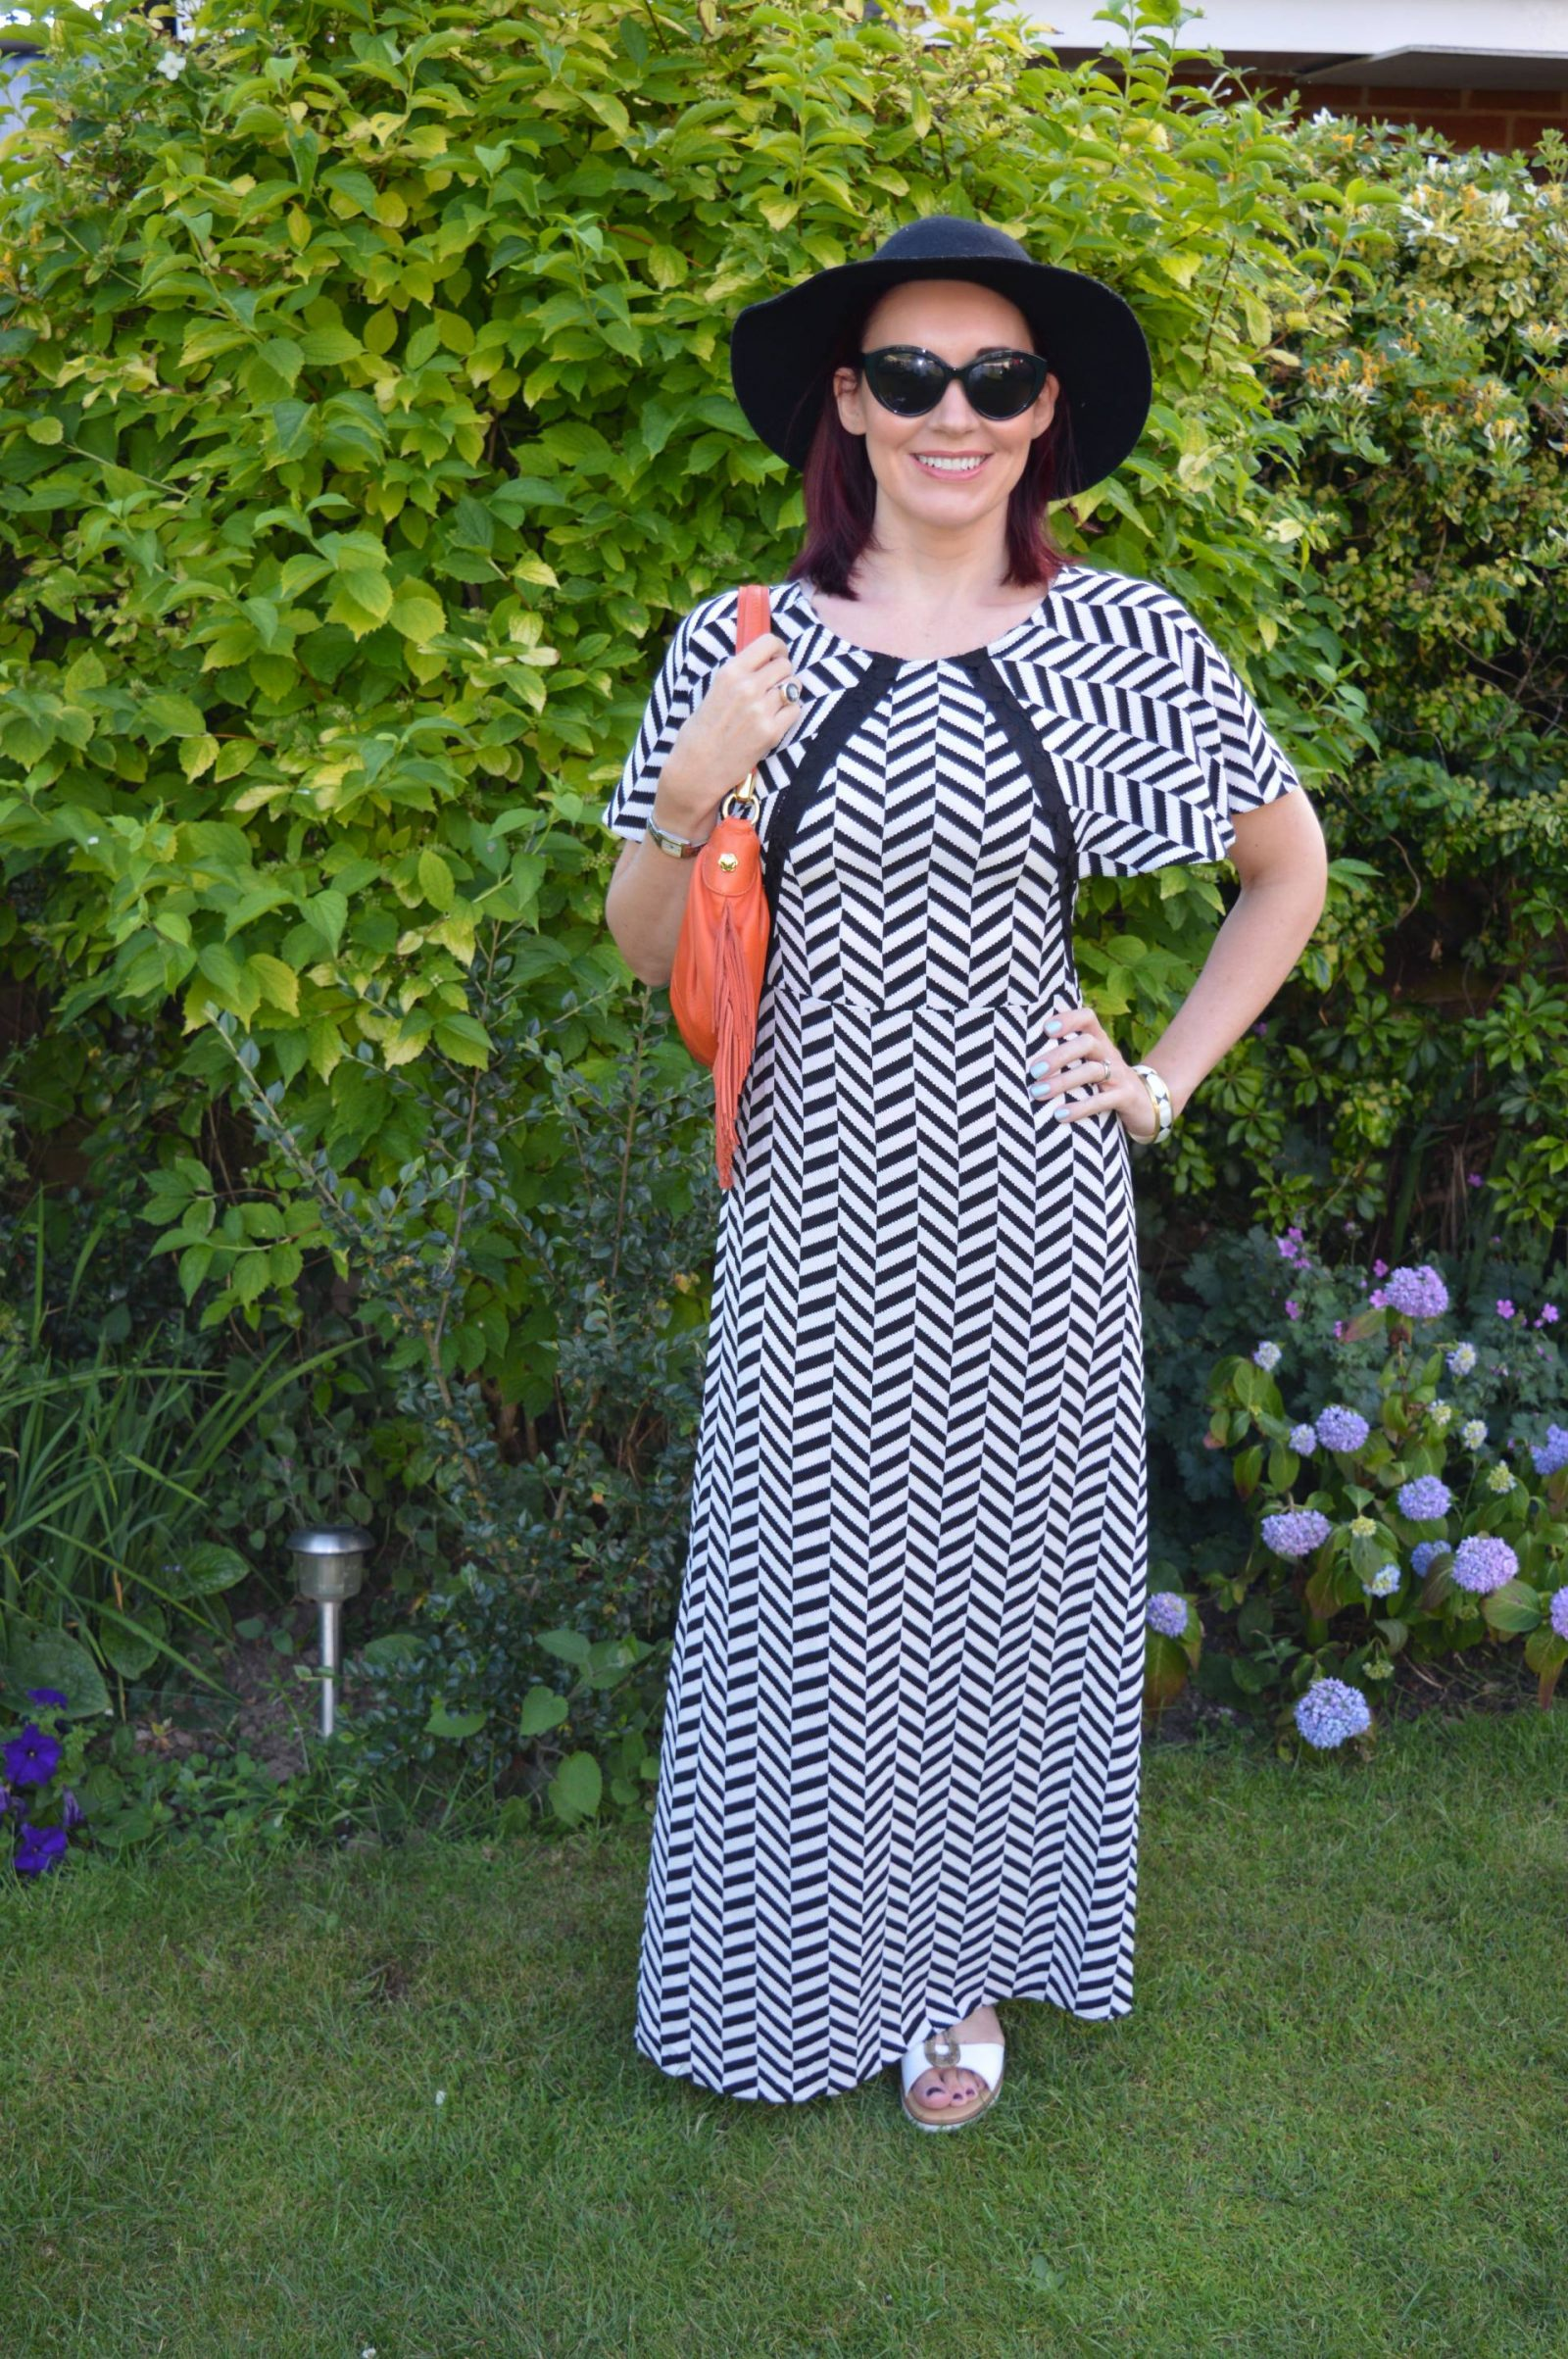 Liquorish Black and White Maxi Dress With a Wide Brim Hat